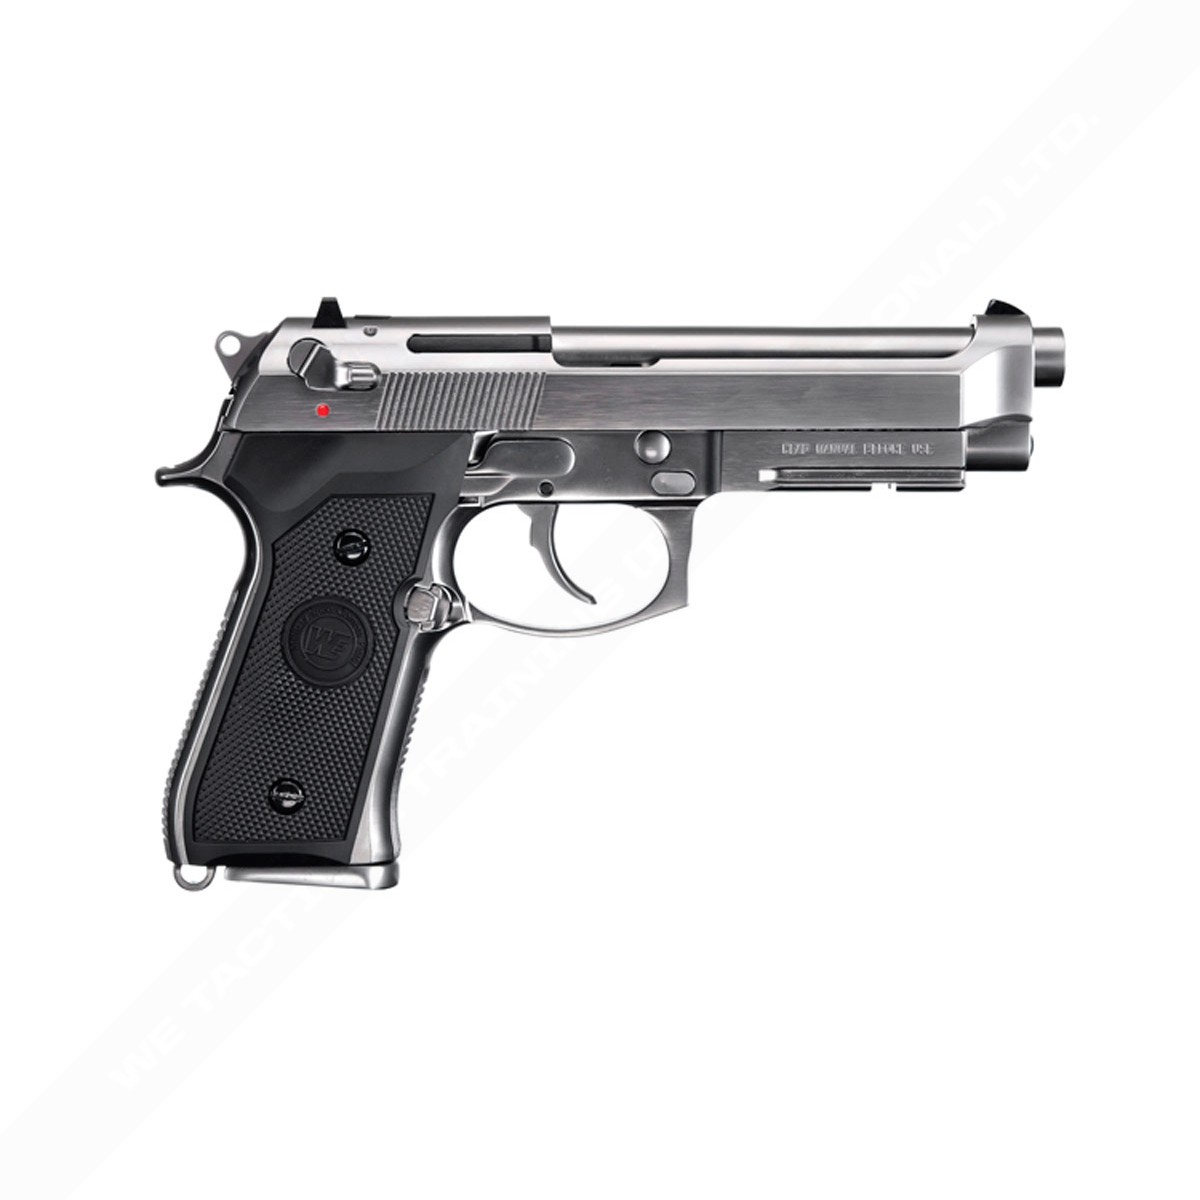 WE Beretta M9A1 (New Gen)Full Metal Gas Blowback Pistol - Silver